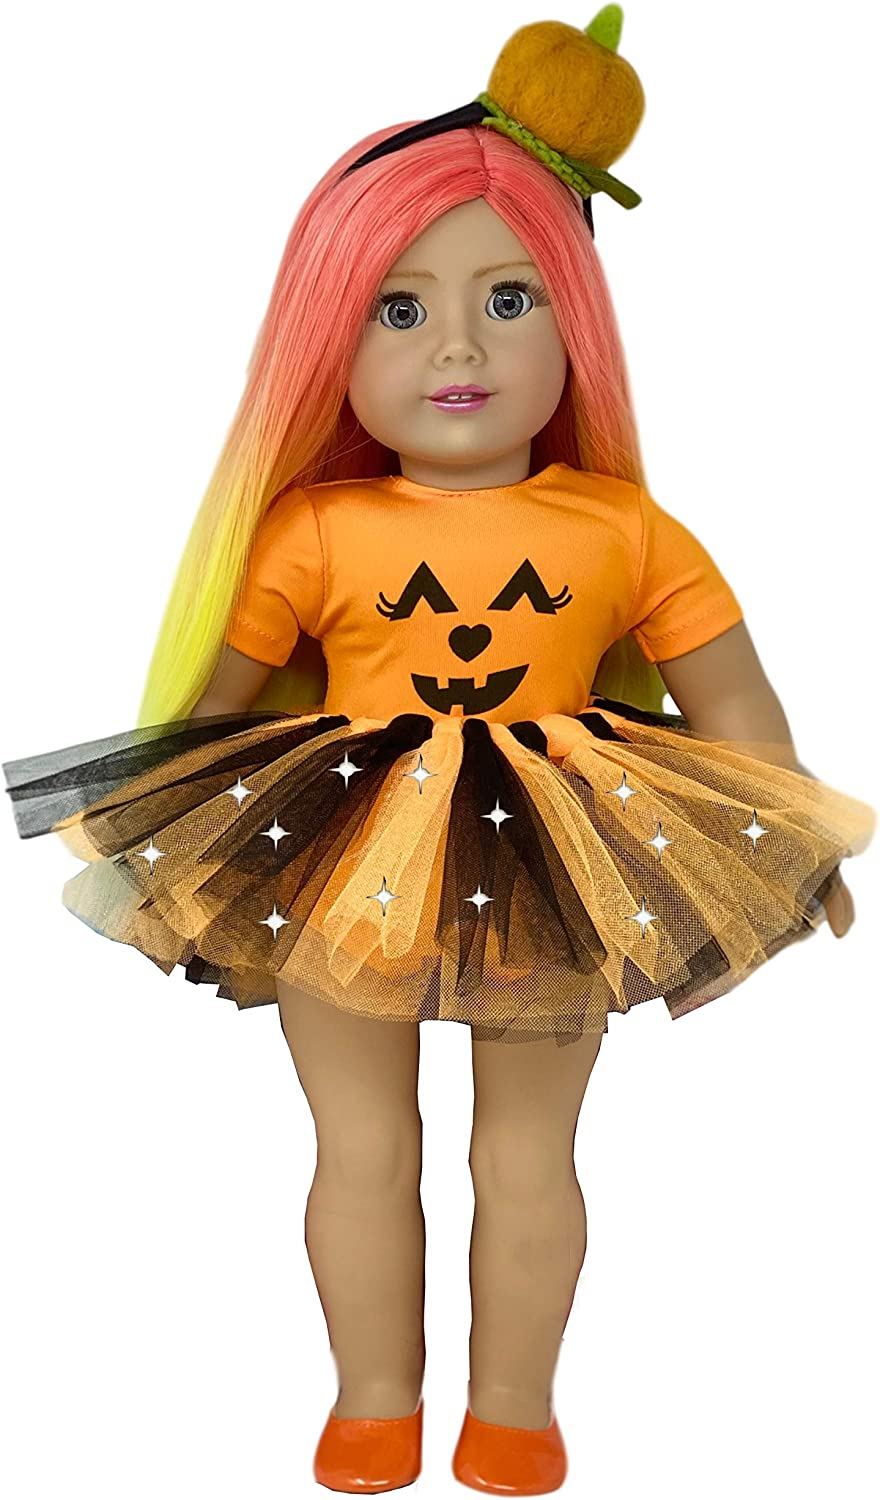 MY GENIUS DOLLS Doll Clothes. Halloween Outfit-Fits 18 inch Dolls Like Our Generation, My Life, American Girl Doll. Accessories:Headband, Shoes and Tutu with Lights | Doll Not Included